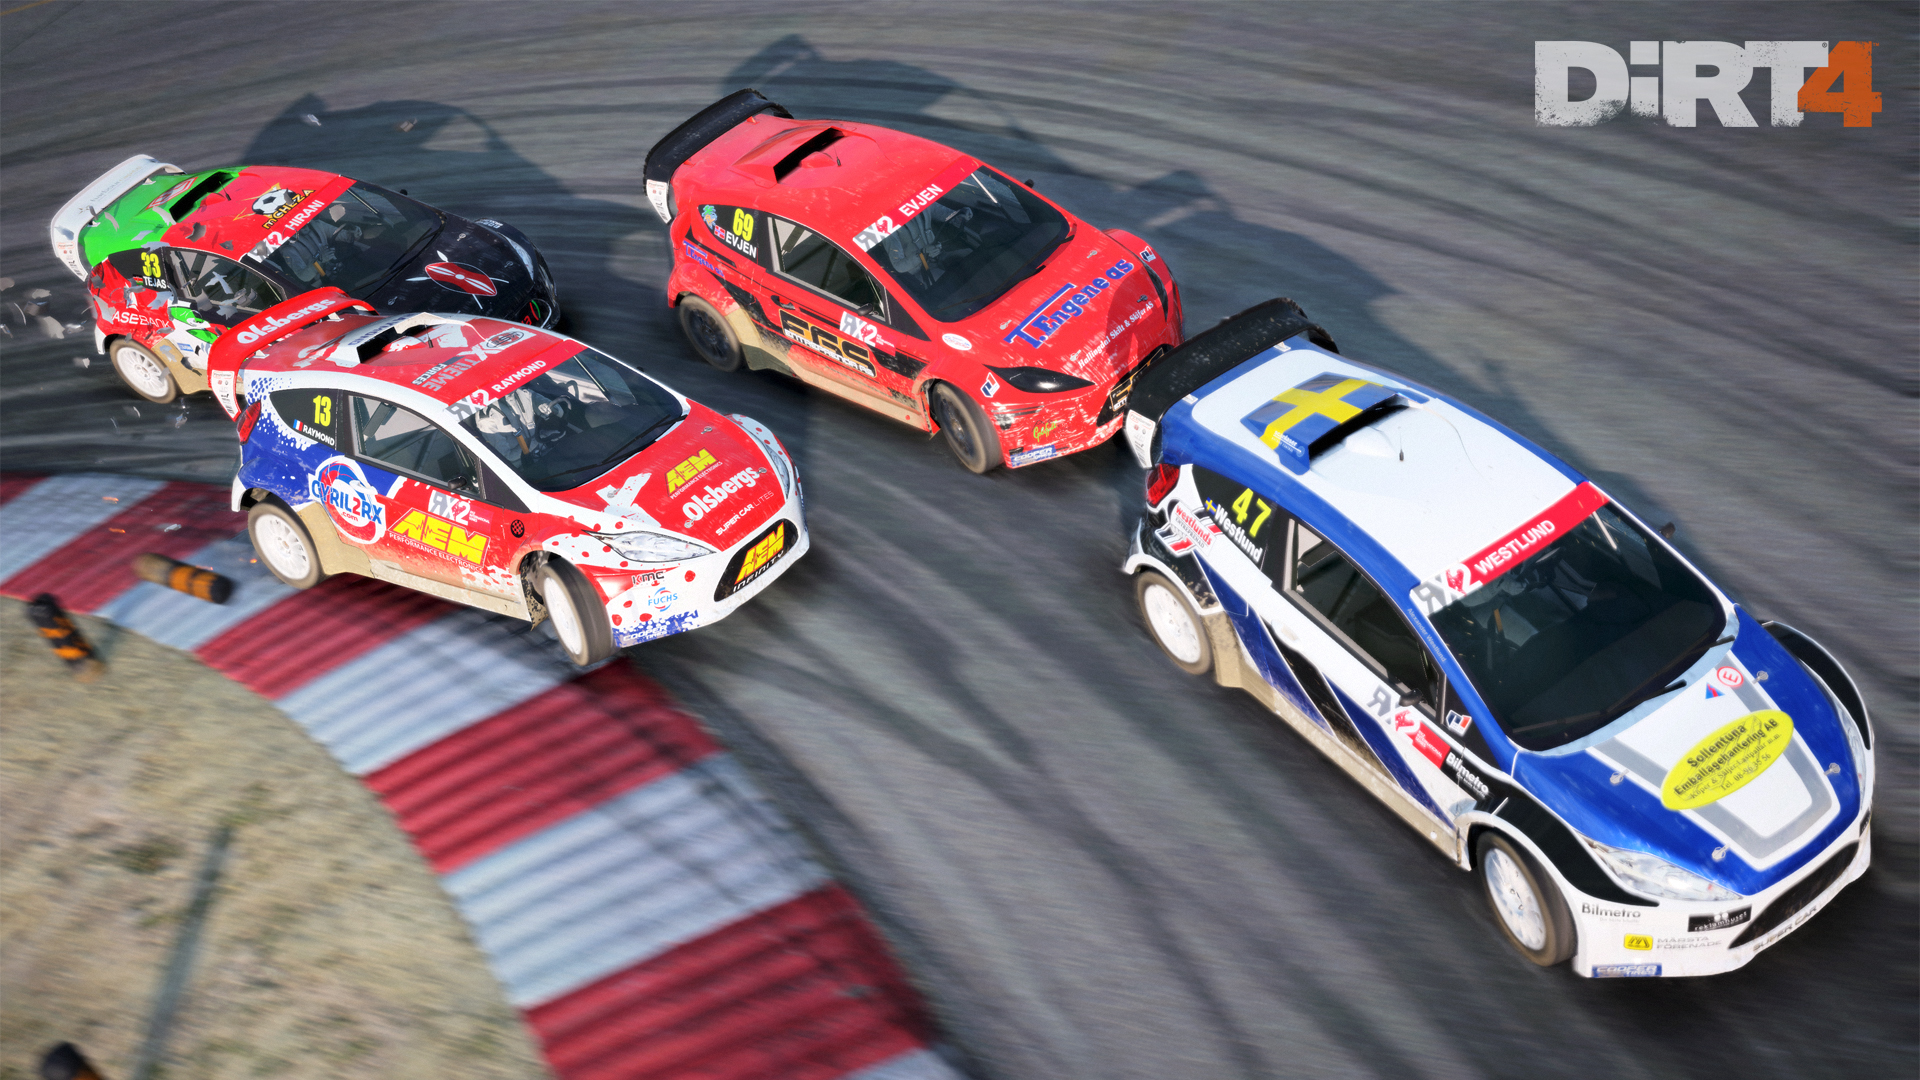 DiRT4 - screen - RX - Montalegre - cars